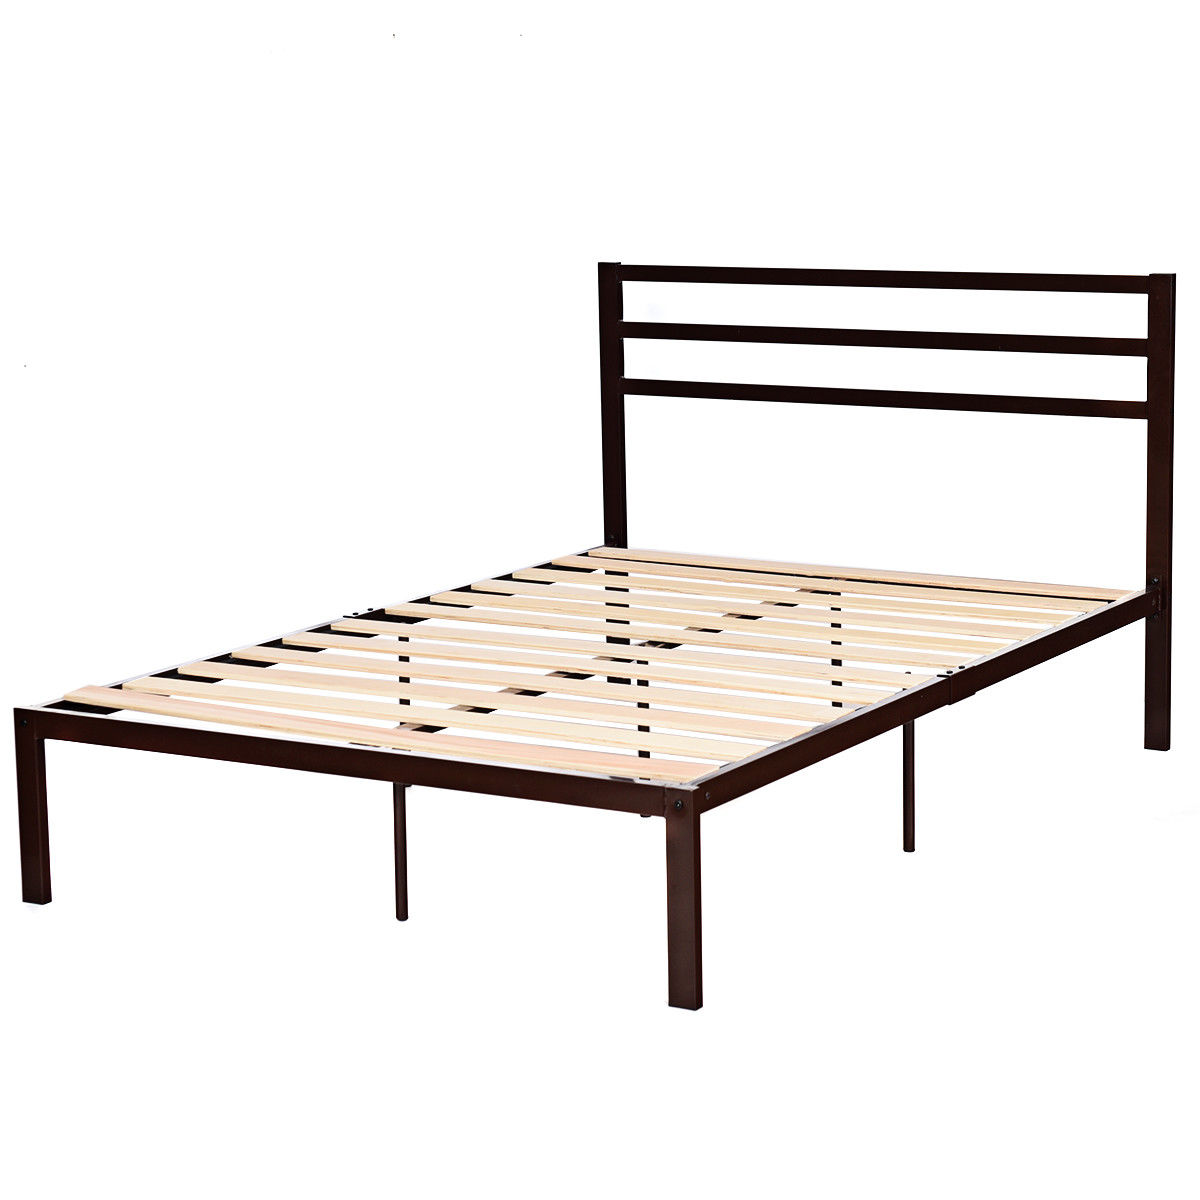 Costway 14 full size metal bed frame platform wooden slat support headboard chocolate